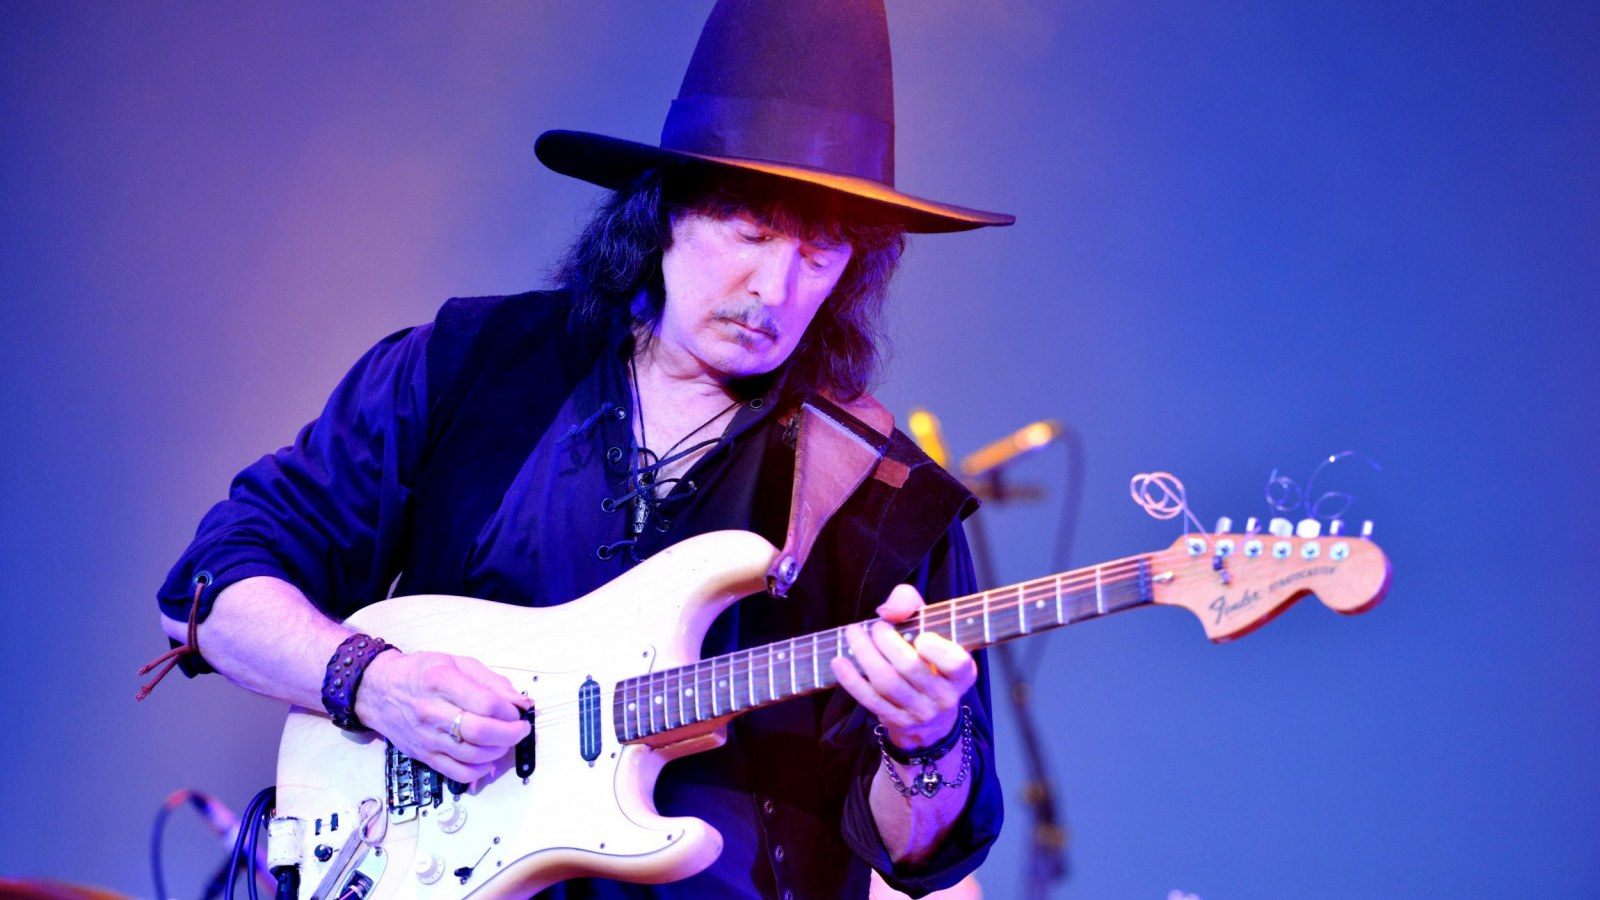 Ritchie Blackmore's Renaissance: From Deep Purple to